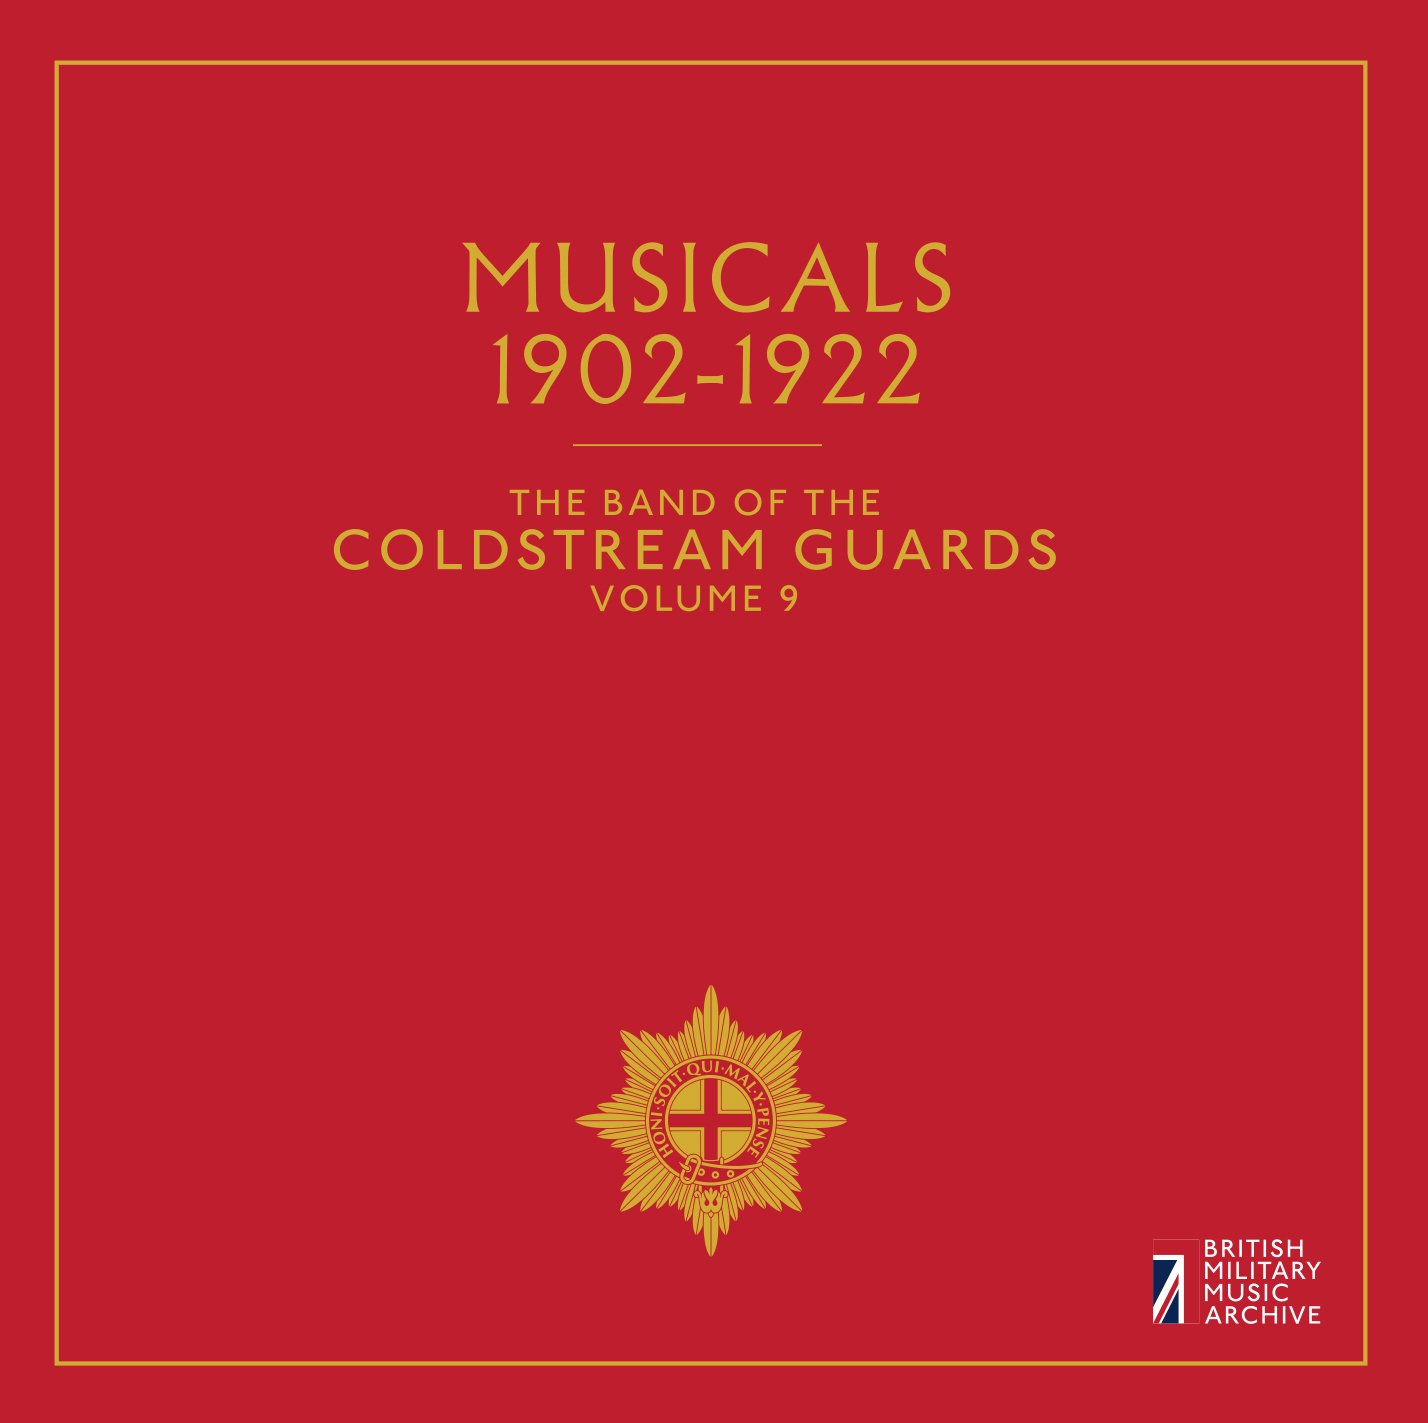 Band of the Coldstream Guards, Vol. 9: Musicals, 1902-1922